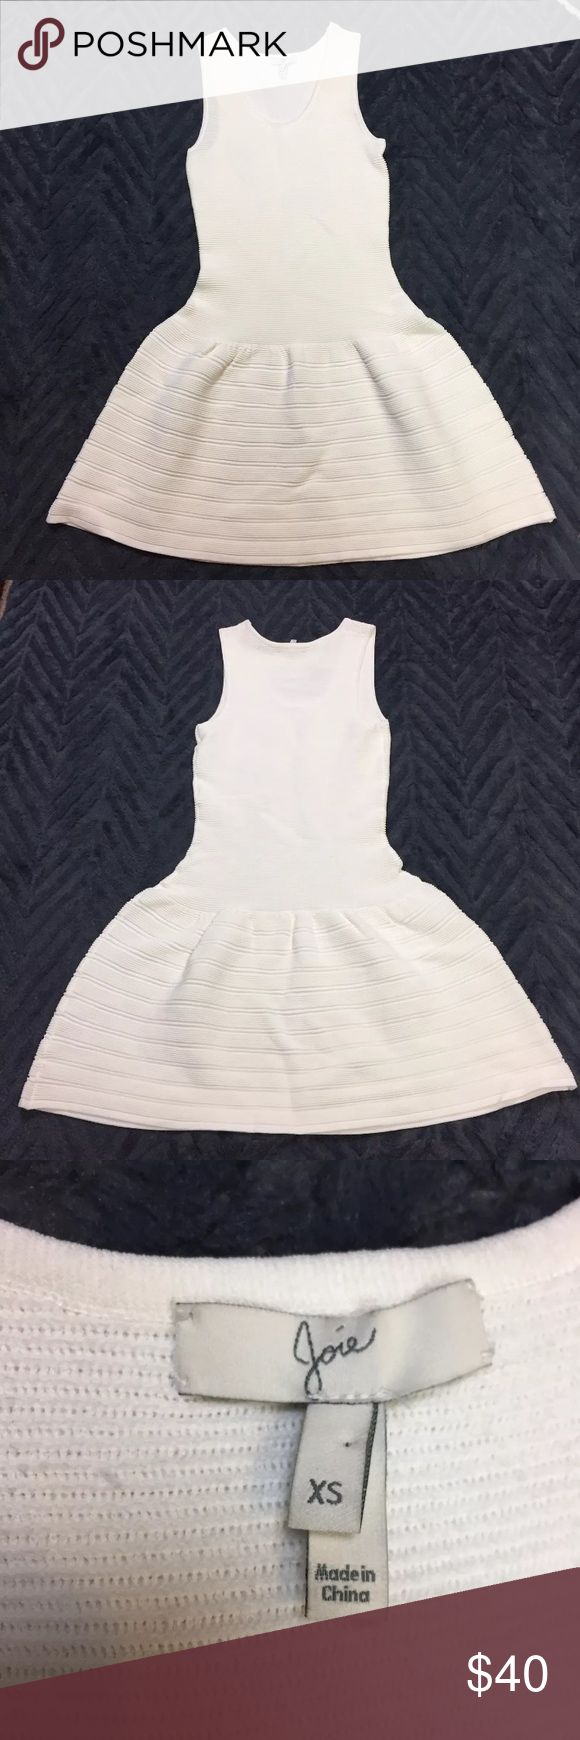 """Joie Slinky Viscose Fit Flare Sleeveless Dress Great used condition, see picture for two snags. Women's size XS slinky cream colored fit and flare Joie dress. 75% viscose 25% nylon  Measurements: Armpit to armpit 13"""" Waist 11.5"""" Shoulder to hem 32"""" Joie Dresses Mini"""